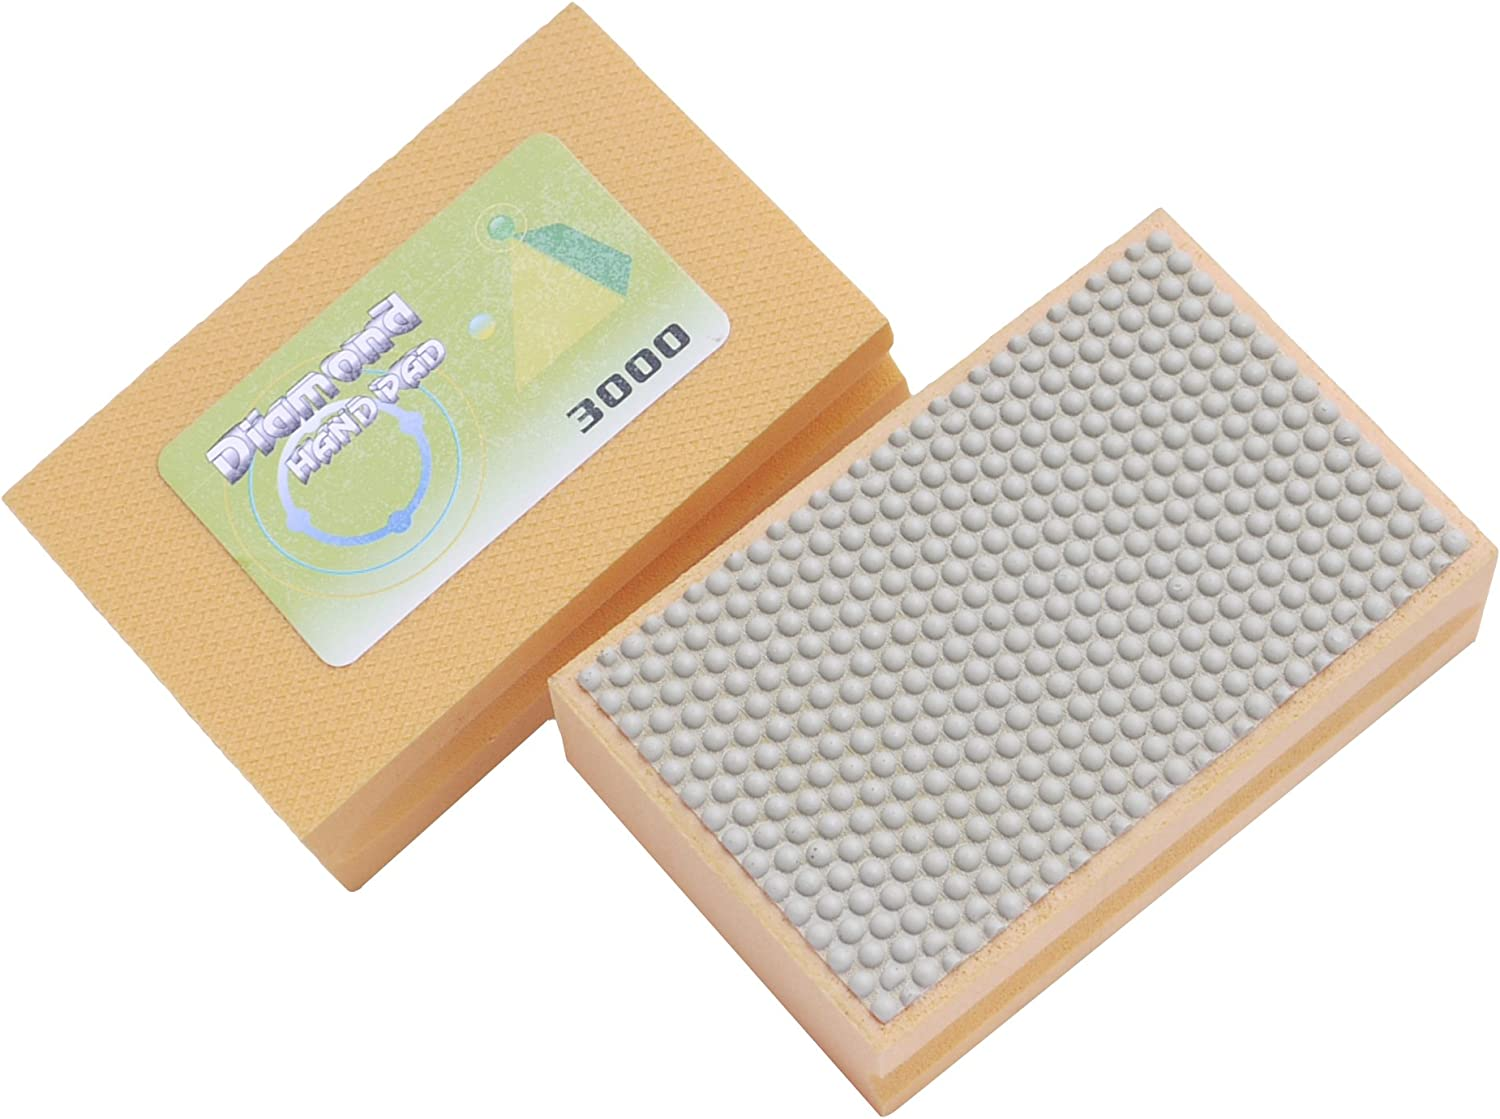 Details about  /3000 Grit Electroplated Triangular Polishing Diamond Oscillating Pads 93mm